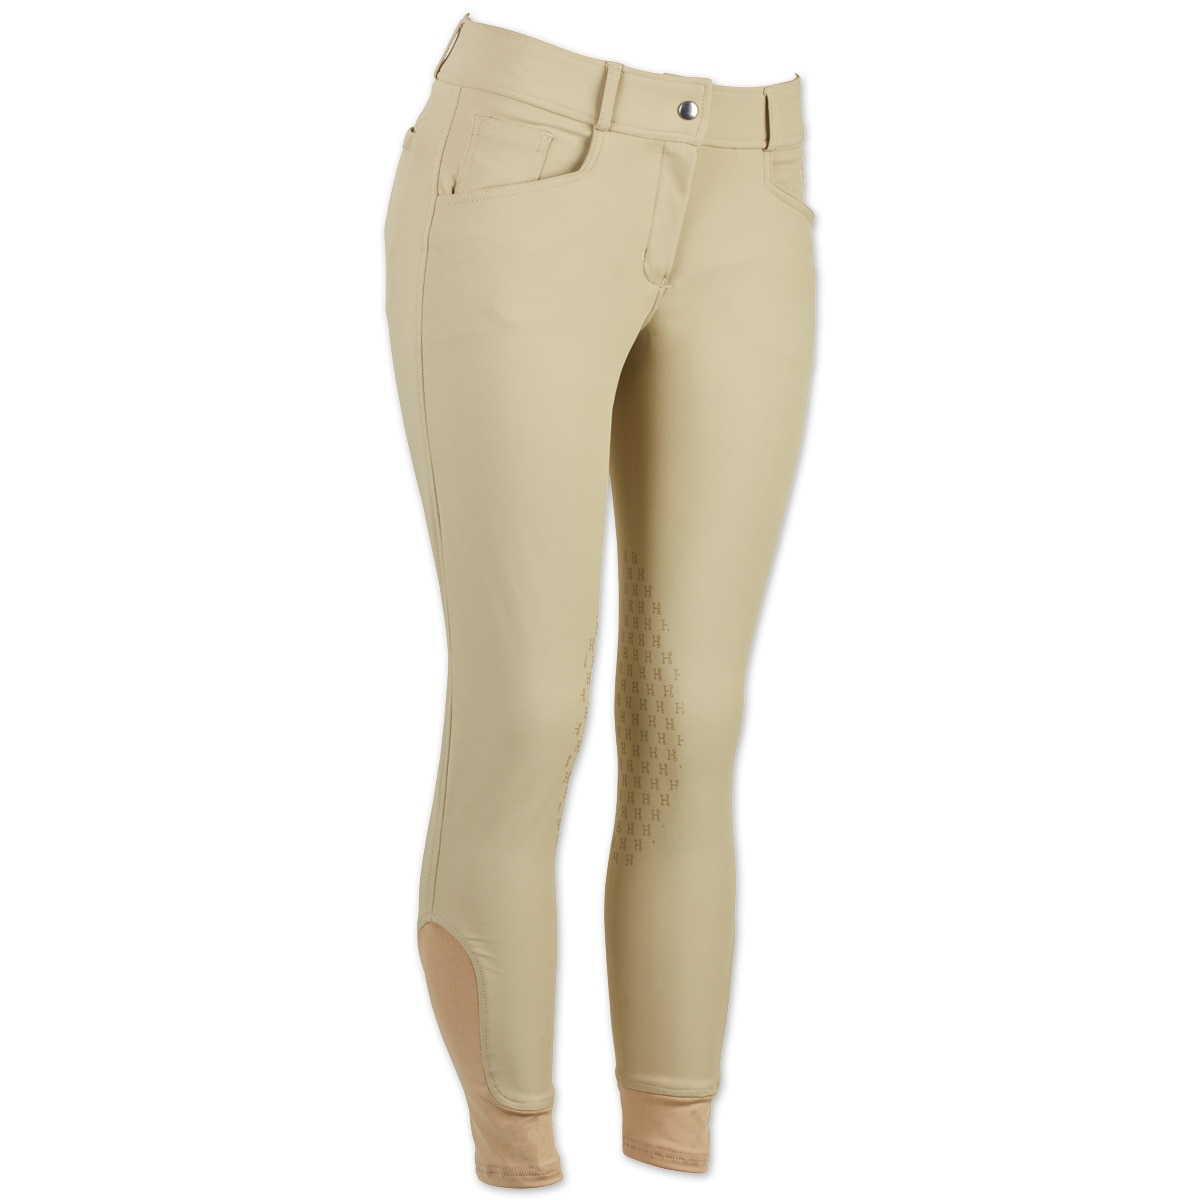 Hadley Silicone Grip Knee Patch Breeches by SmartPak